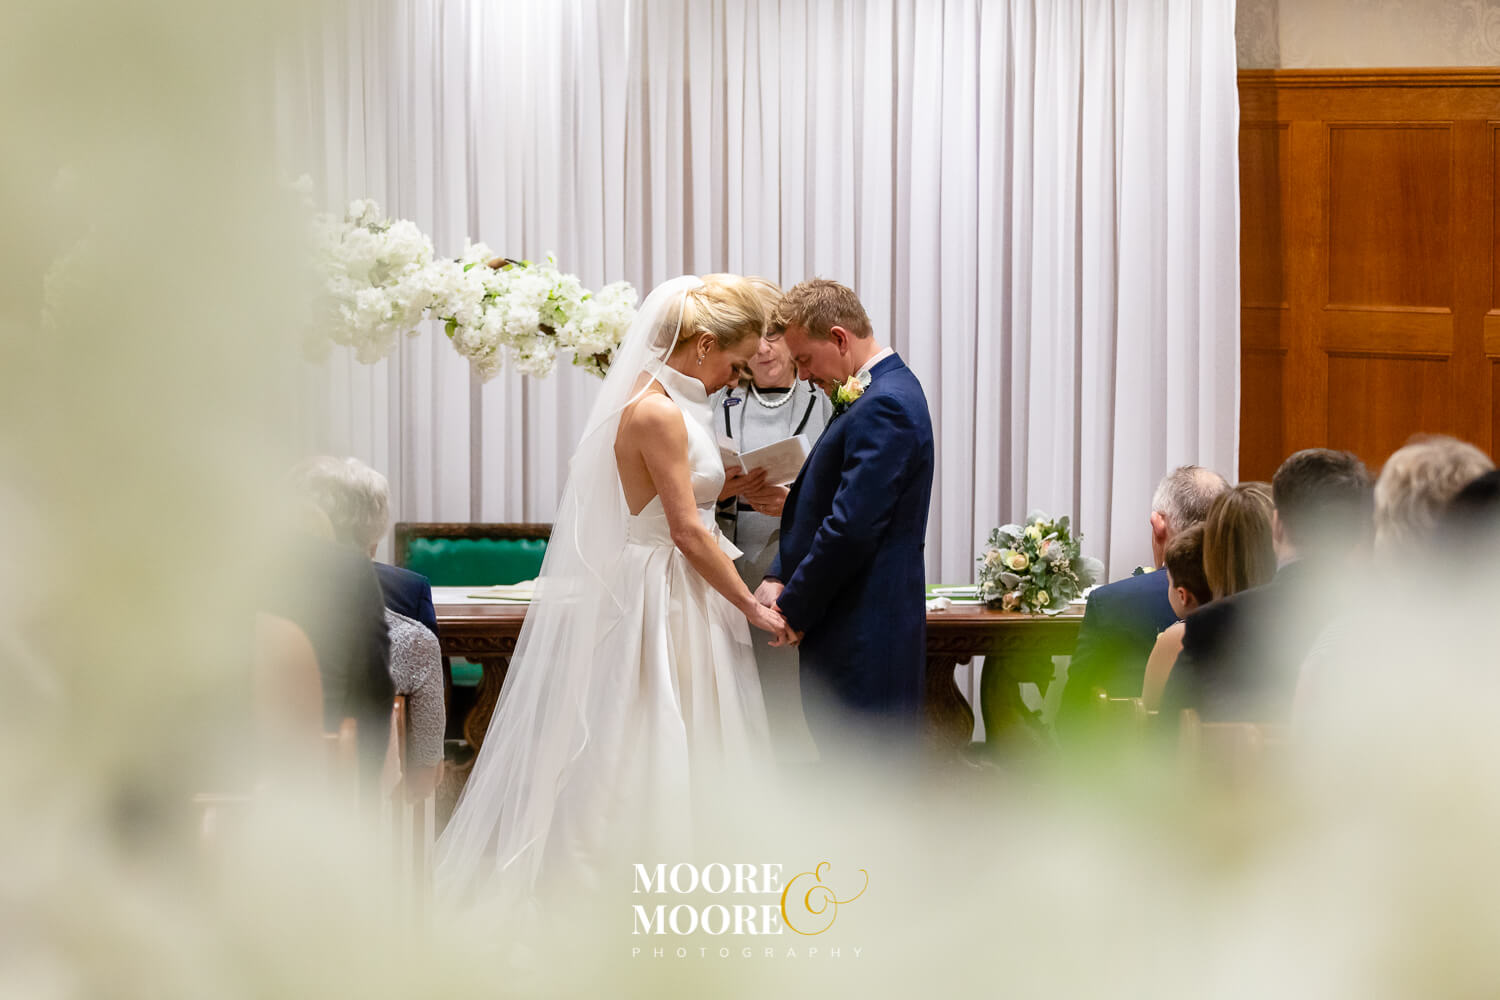 Bride and groom beautiful ceremony photo. Wedding Photos by Moore & Moore Photography, Hampshire